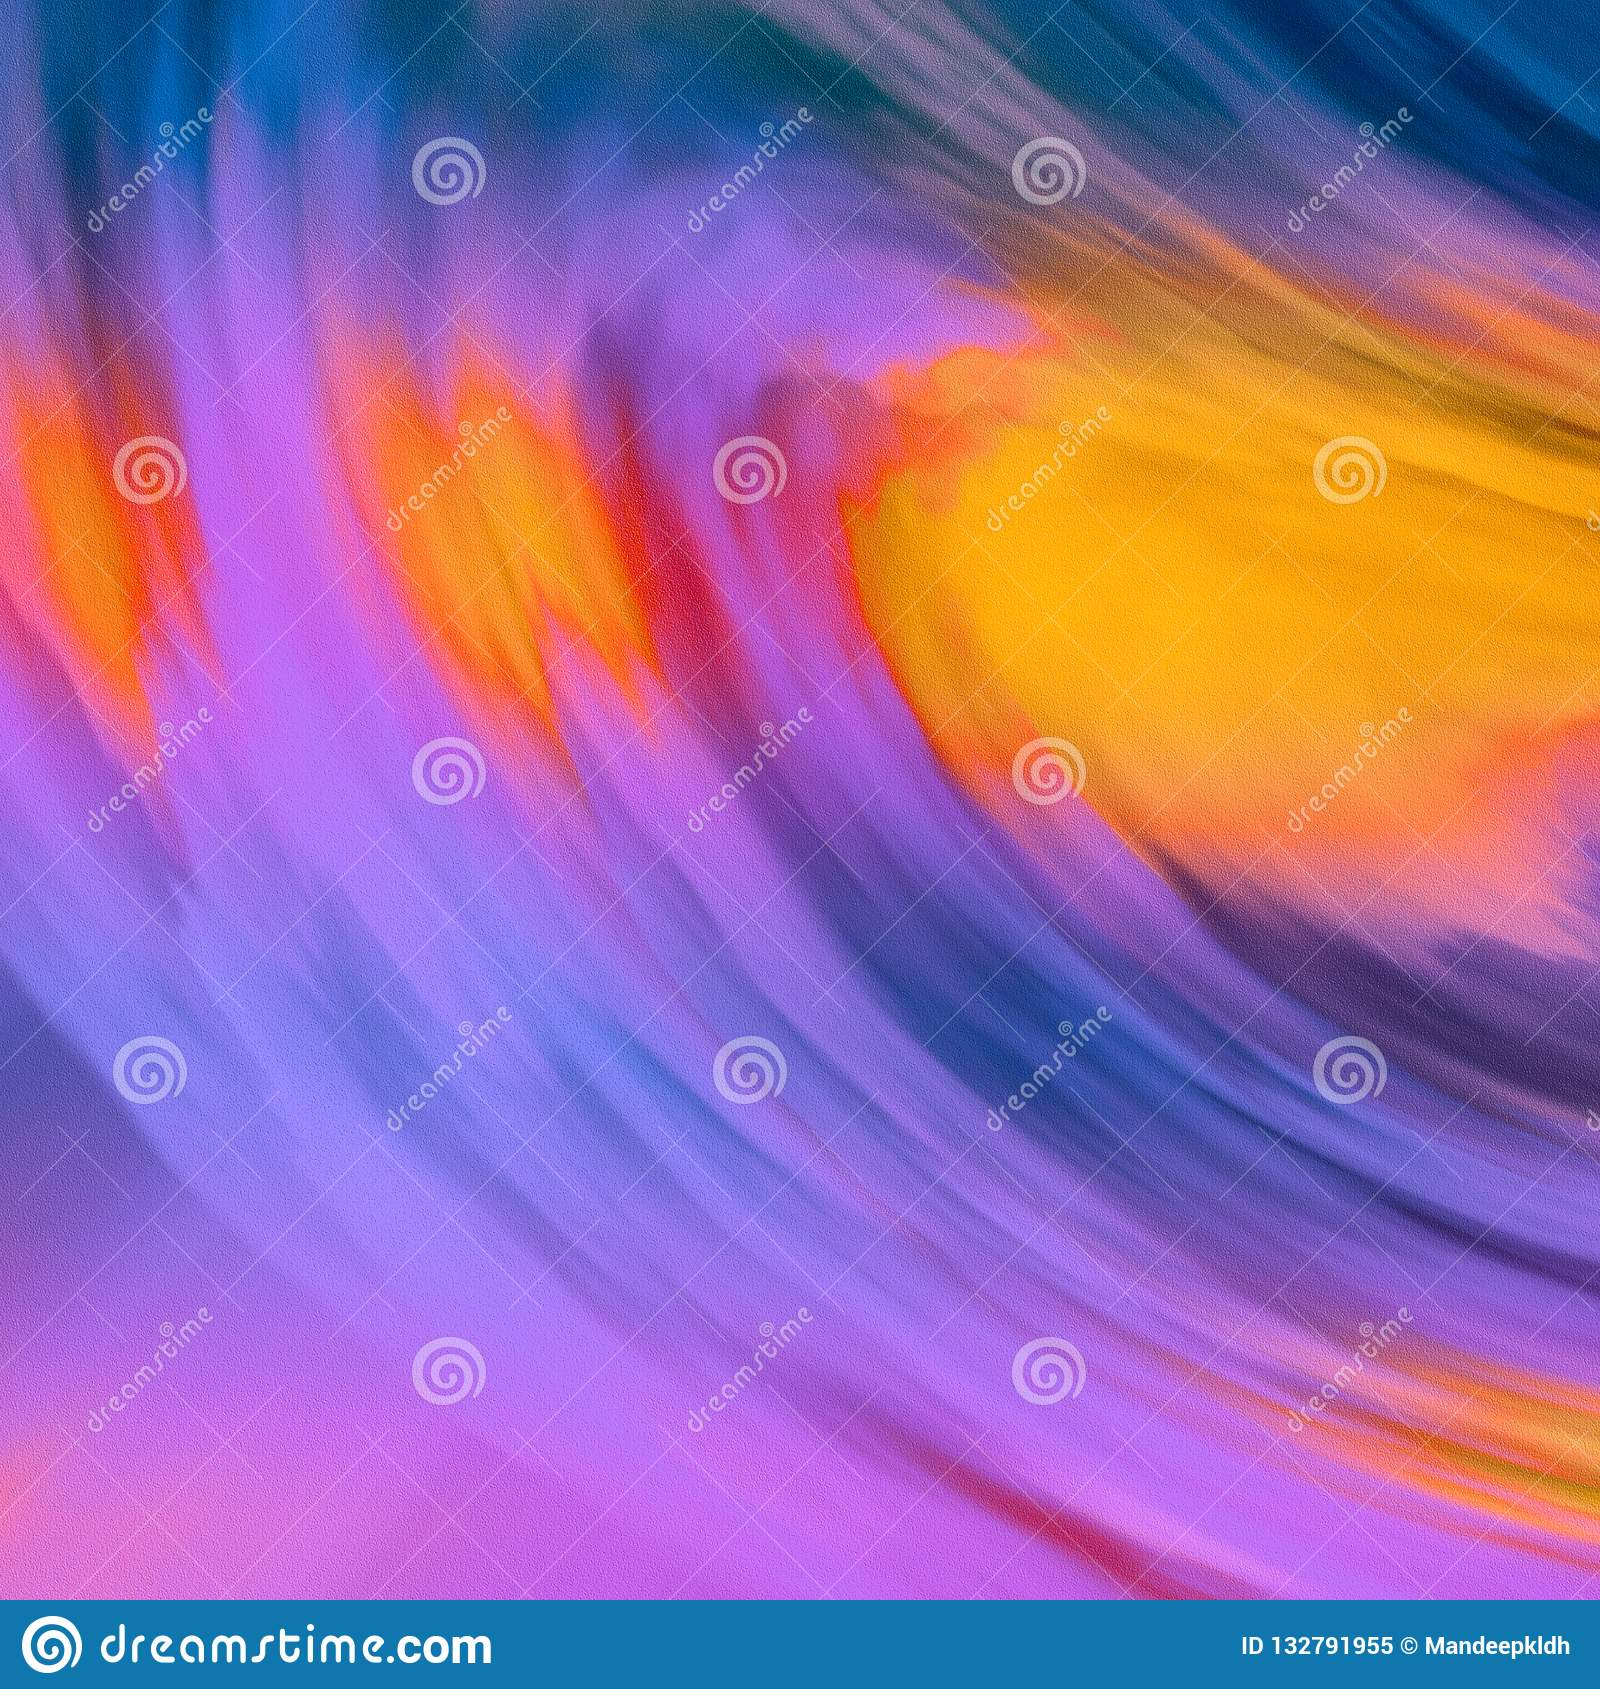 Abstract Colorful wavy theme design with purple & orange tone. Bright glowing canvas paint. Brush strokes hand drawn canvas print.